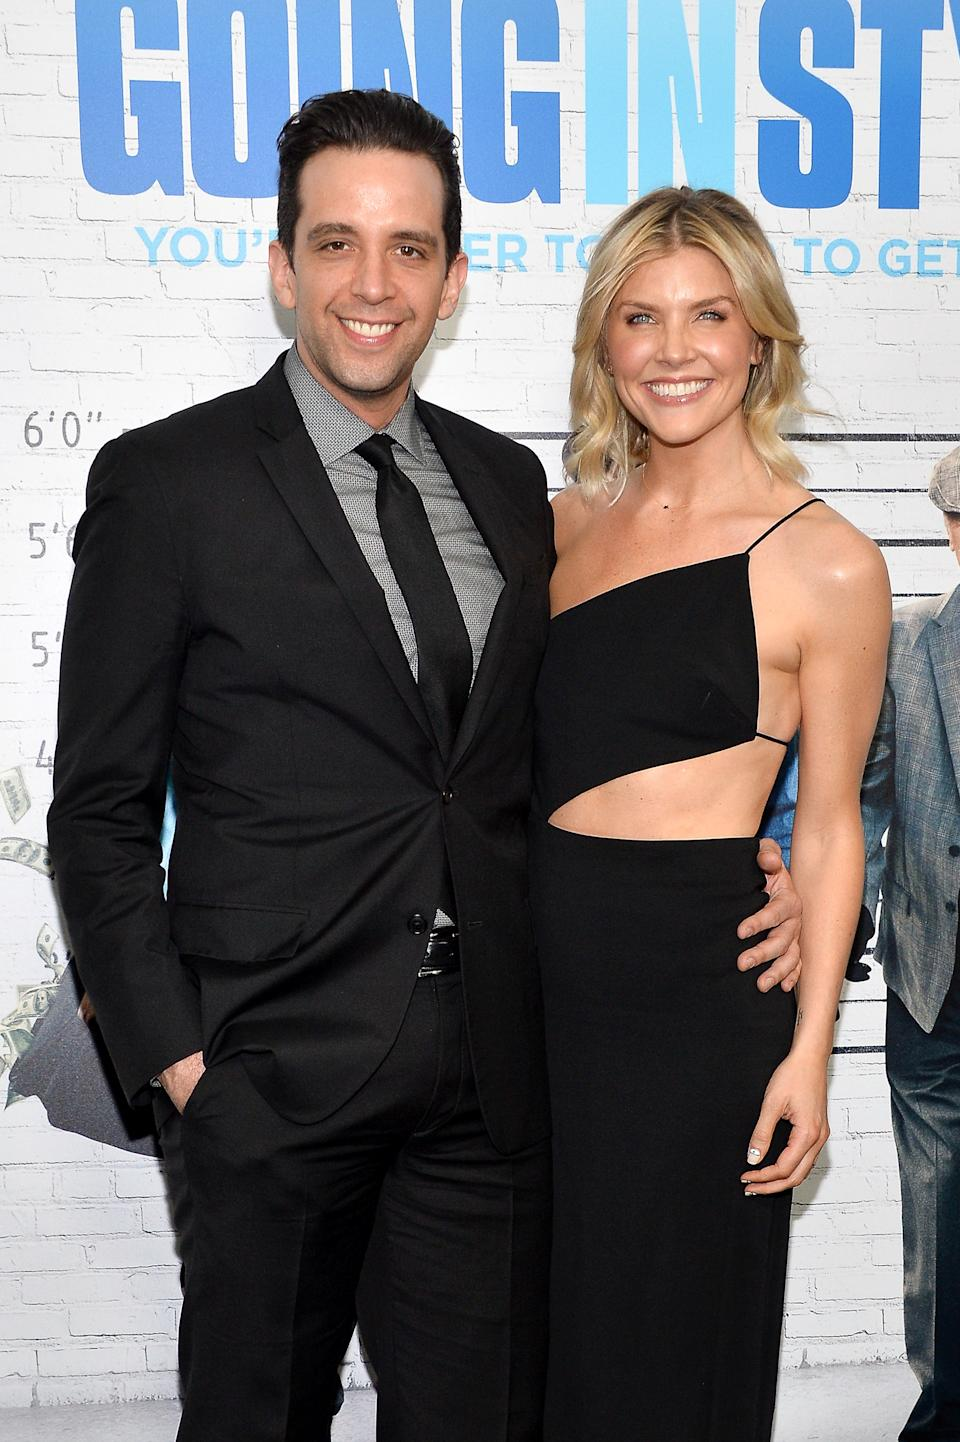 """NEW YORK, NY - MARCH 30:  Nick Cordero (L) and Amanda Kloots attend the """"Going in Style"""" New York premiere at SVA Theatre on March 30, 2017 in New York City.  (Photo by D Dipasupil/FilmMagic)"""